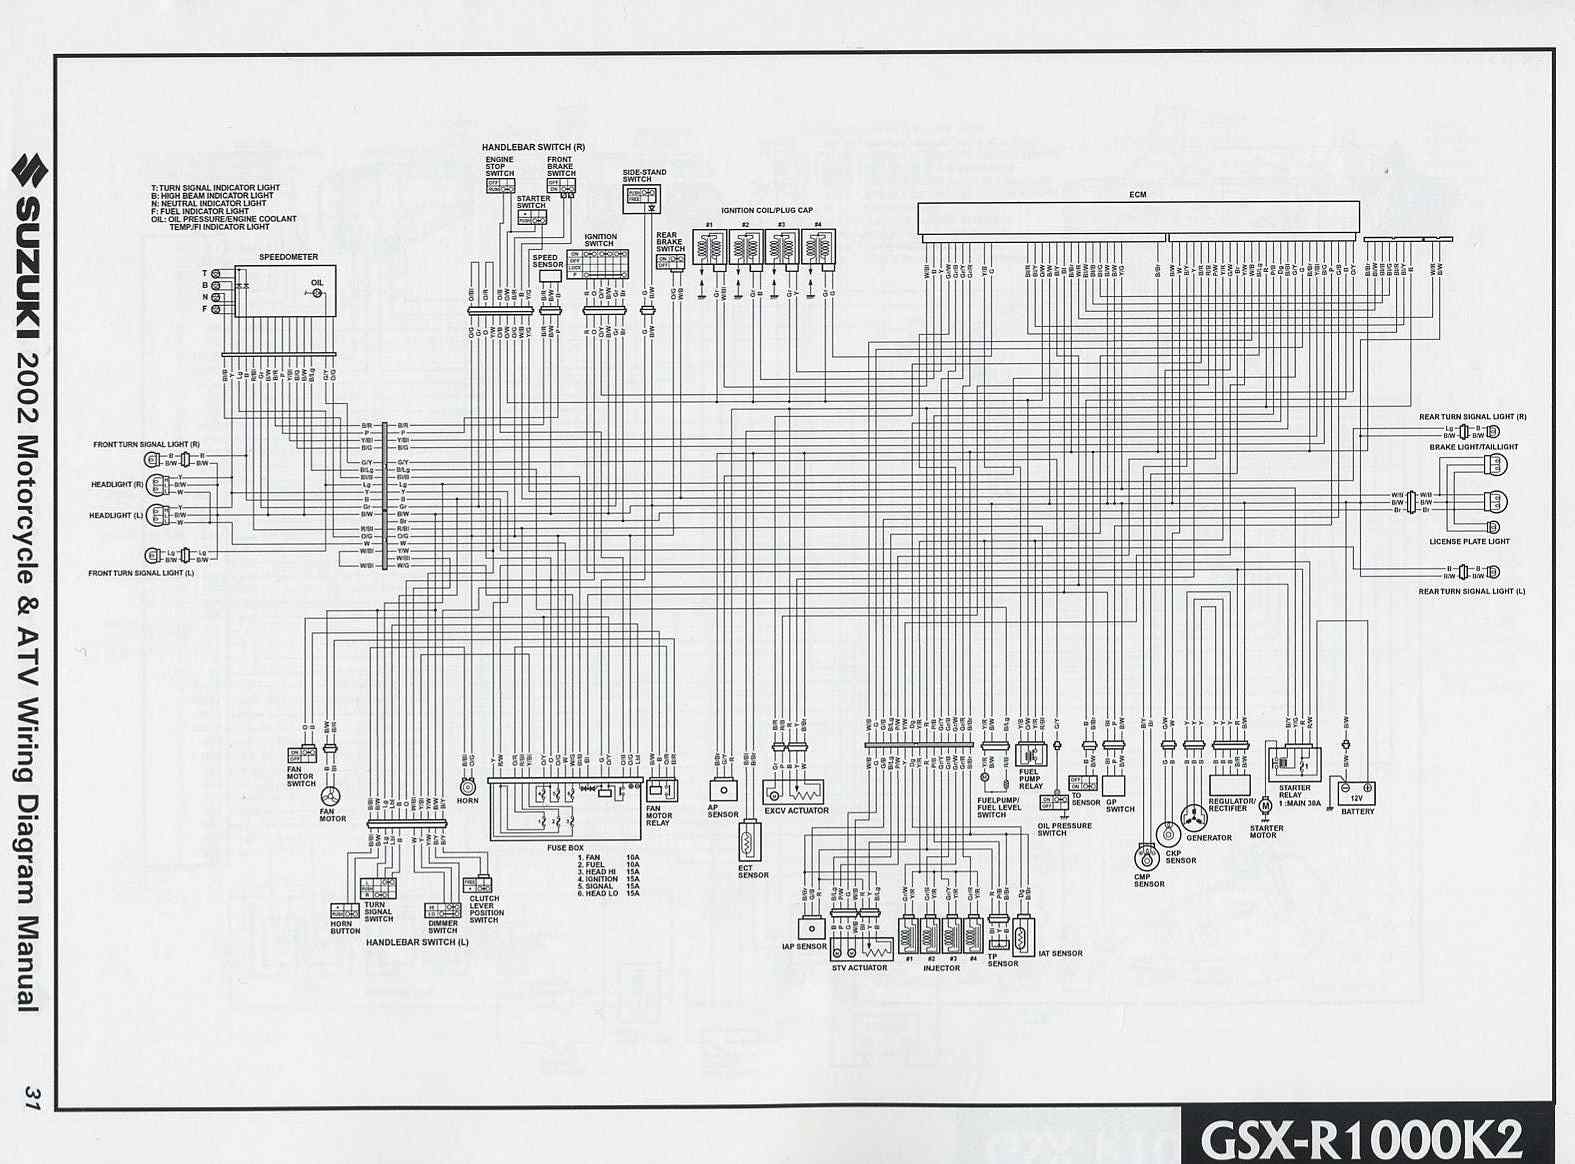 medium resolution of 2001 suzuki gsxr 1000 wiring diagram wiring diagrams img rh 48 andreas bolz de 2001 suzuki